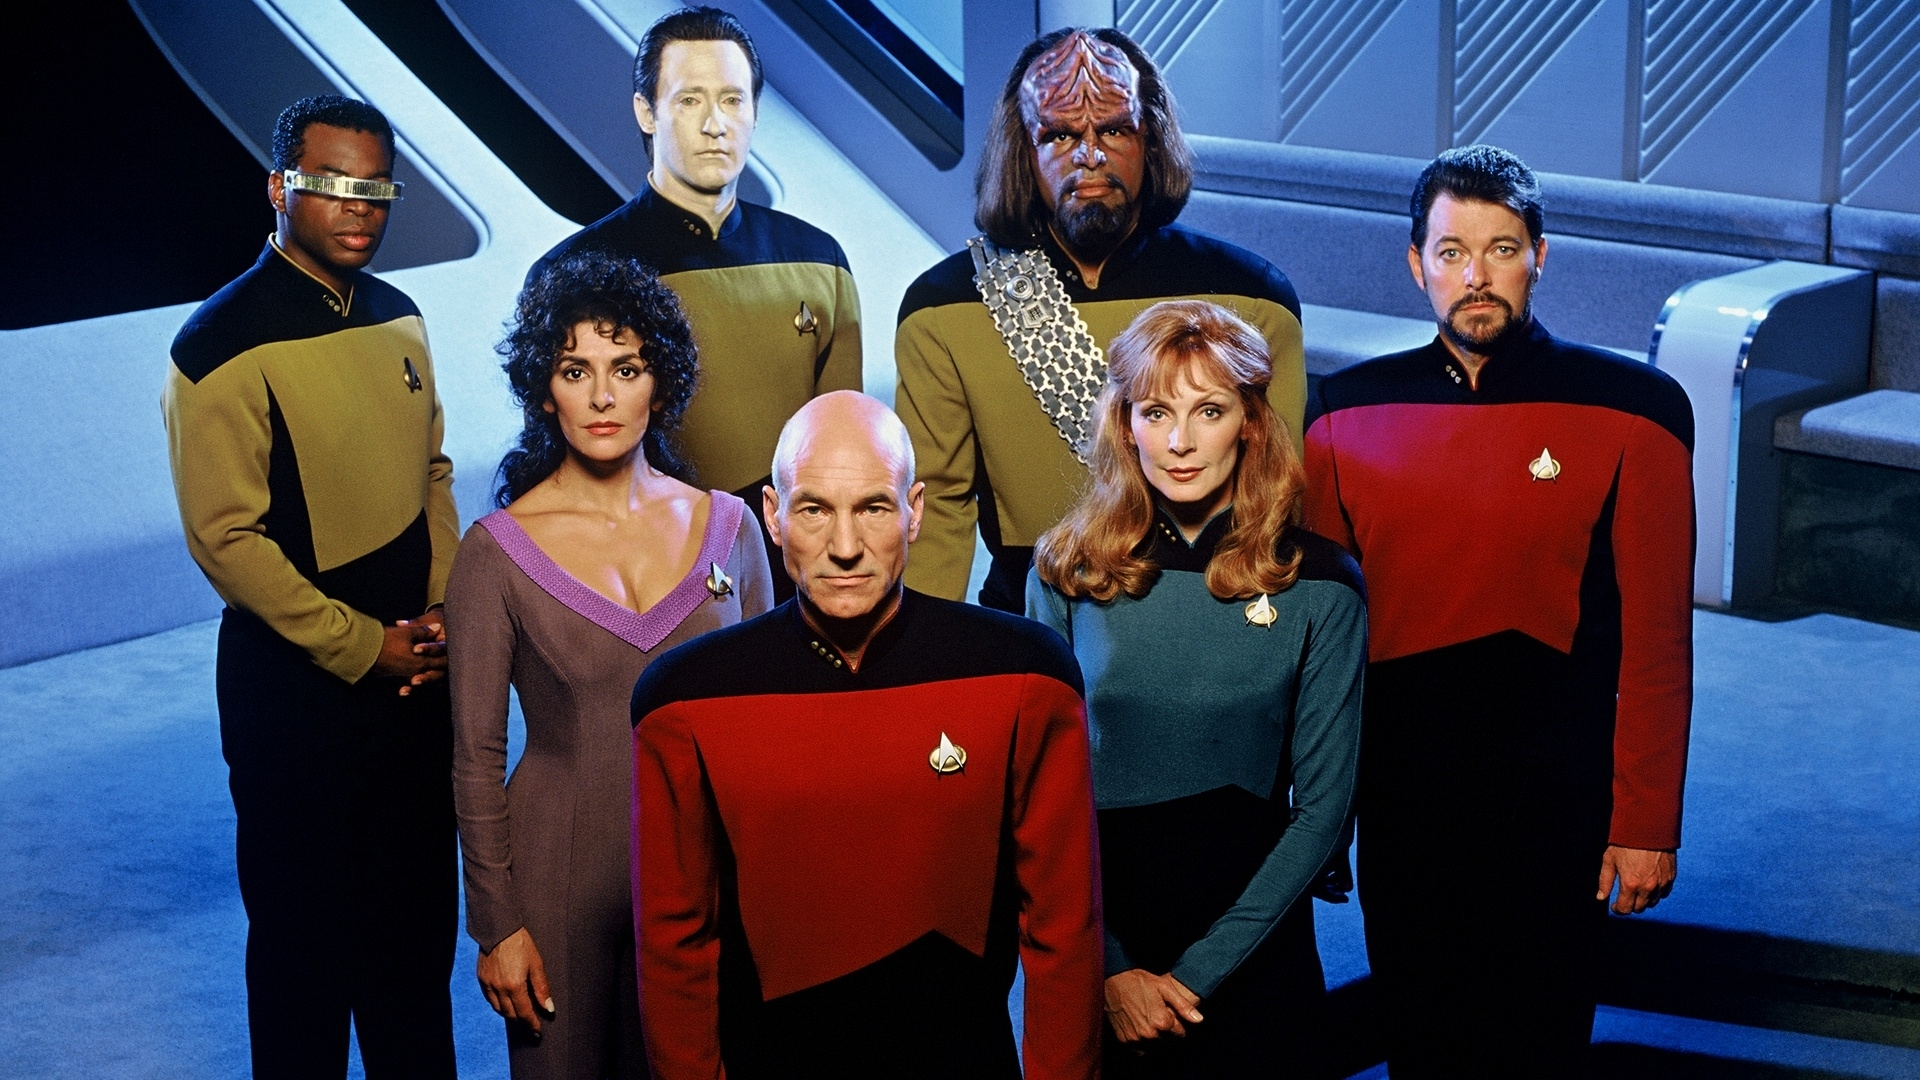 captain picard & crew tng full hd wallpaper and background image